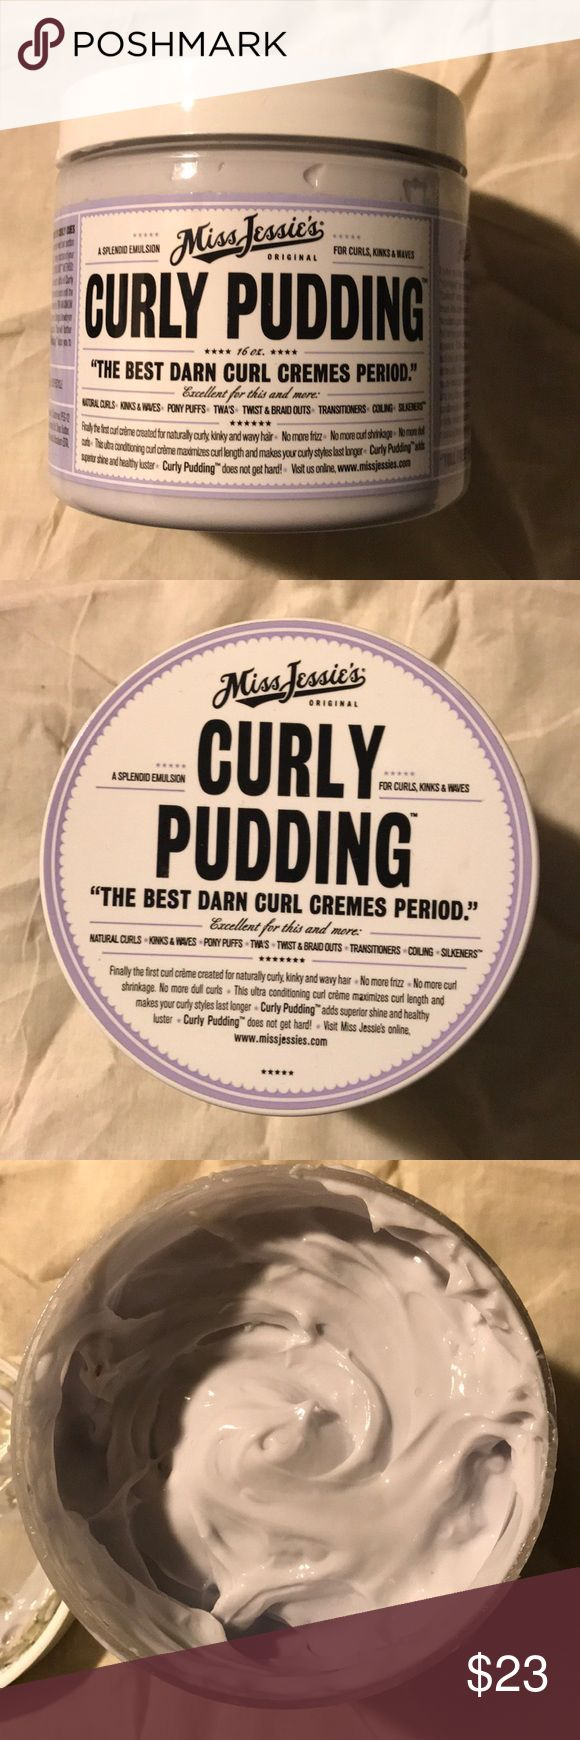 Miss Jessie's Curly Pudding 💜 Miss Jessie's curly pudding. Transform your frizzy locks to curly cues with this Creme! Has a great scent. I only used once so tub it pretty much 100% full. Good for daily use. It is a pretty big tub of product!!! Miss Jessie's Makeup